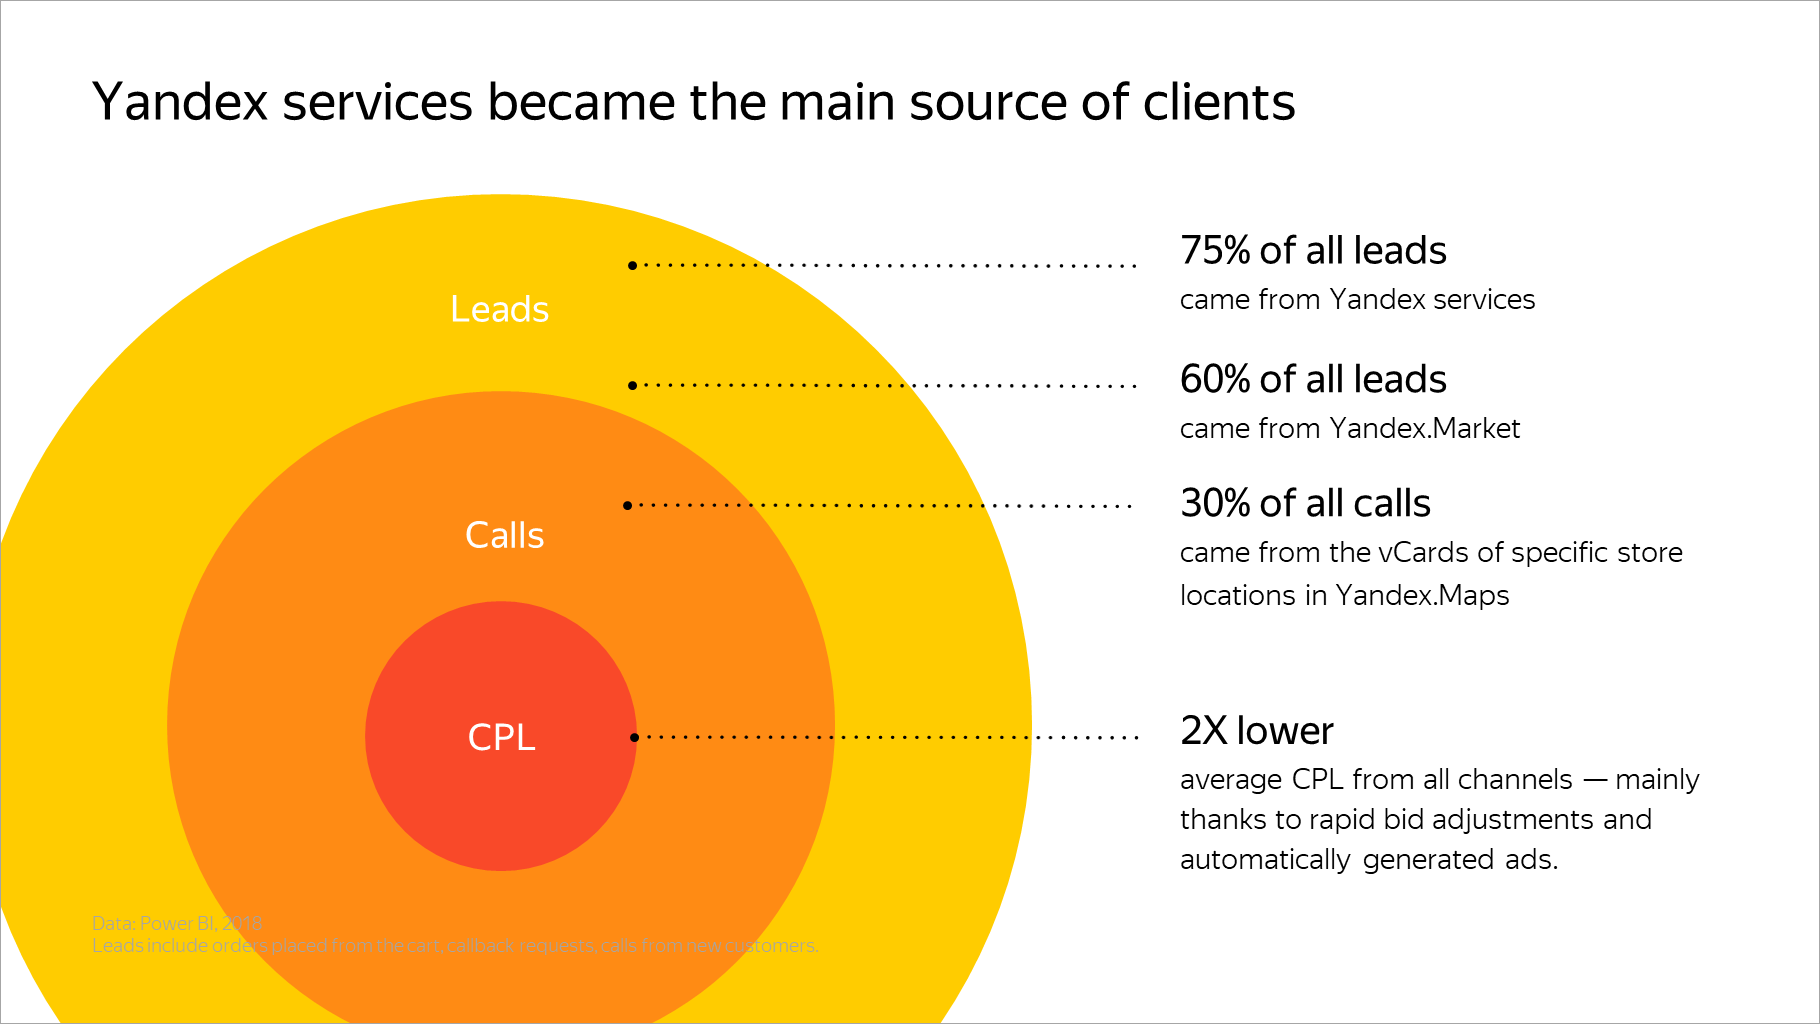 Yandex services became the main source of clients